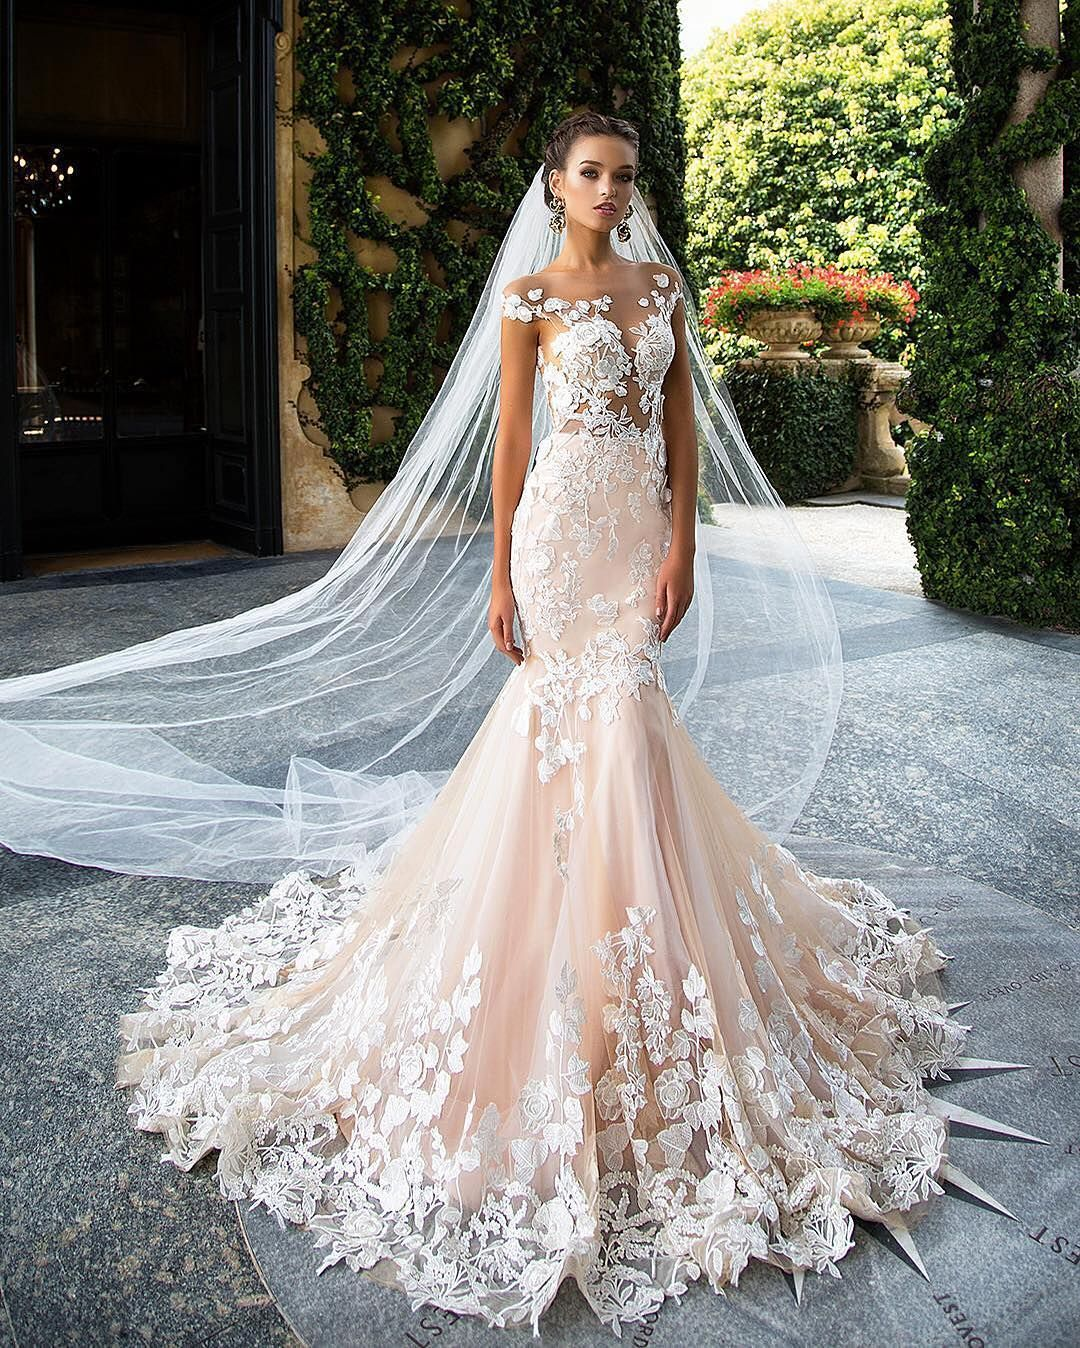 Pinterest Wedding Dresses.Start Your Luxury Wedding Dress Search With This Pinterest Board